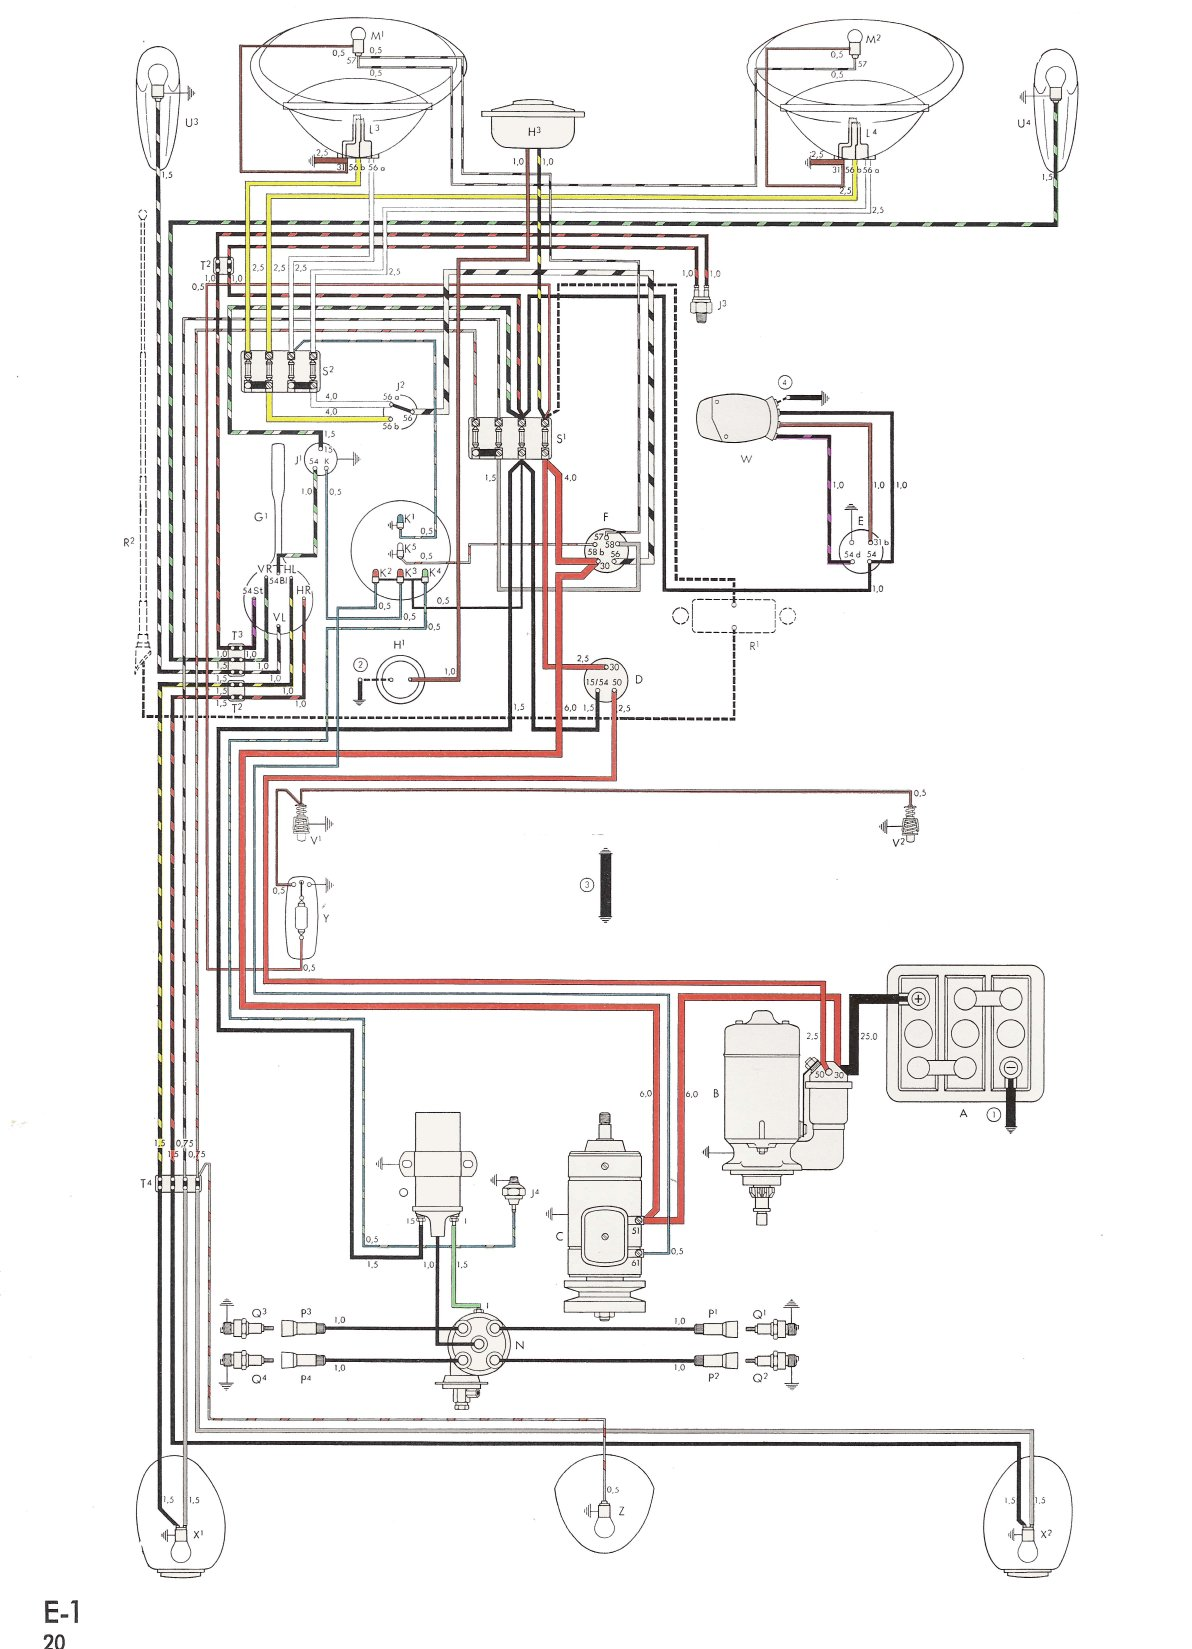 74 blazer wiring diagram 74 bug wiring schematics thesamba.com :: type 1 wiring diagrams